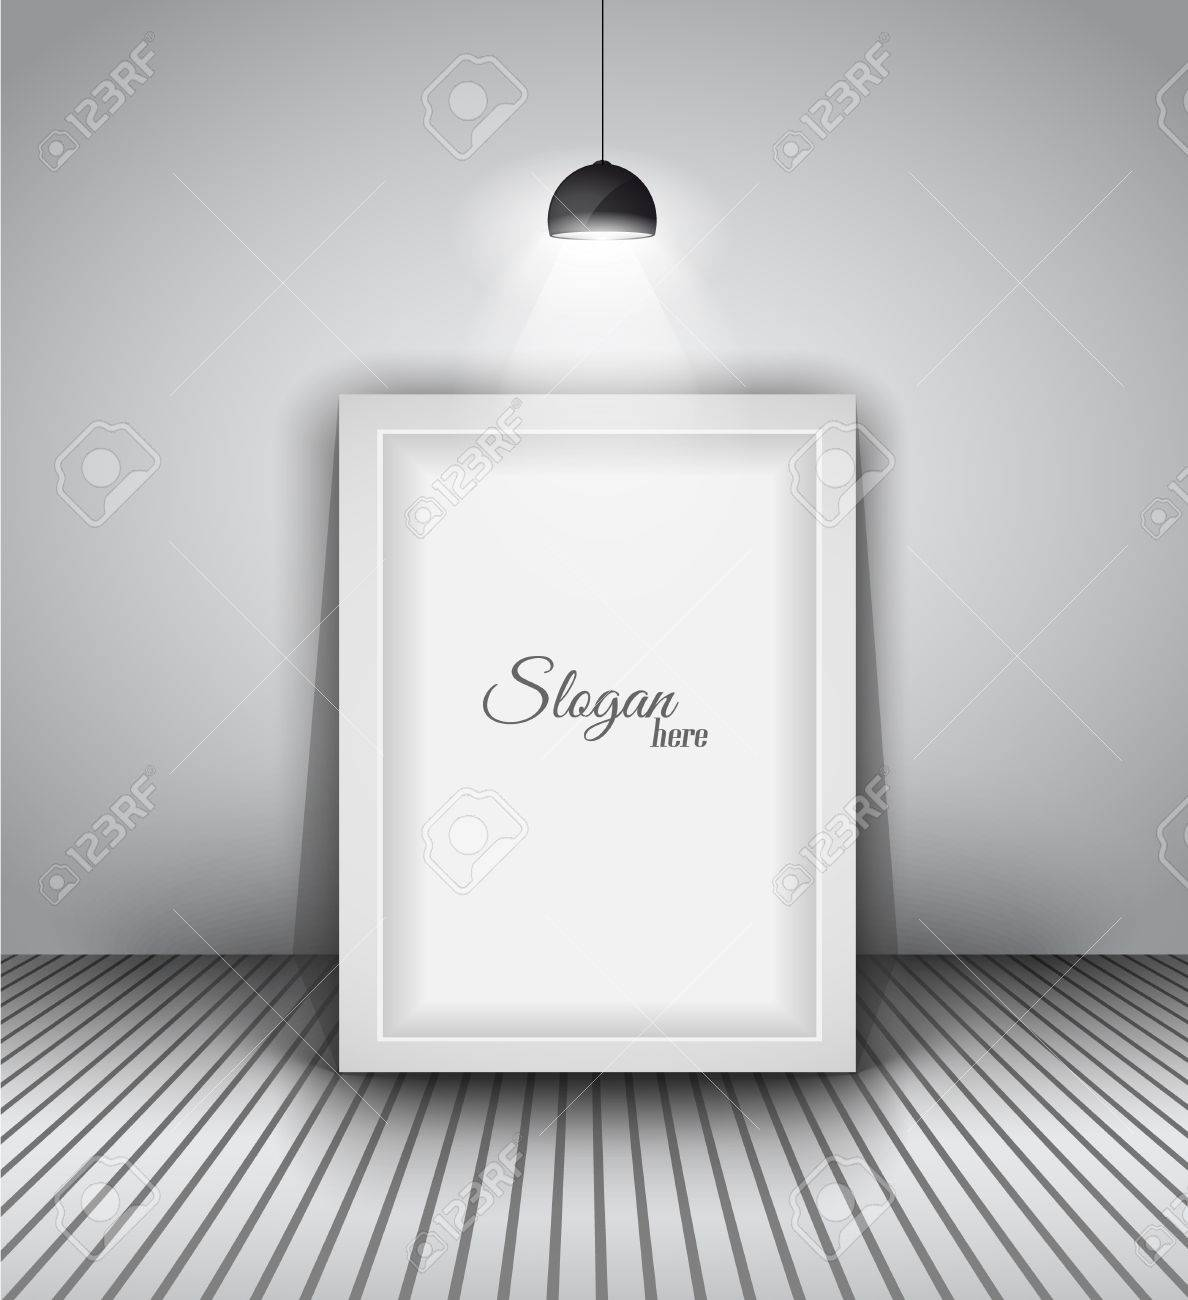 Modern interior art gallery frame design with spotlights. Shelf, spotlight with directional light, delicate shadows and clean background. Stock Vector - 20226767